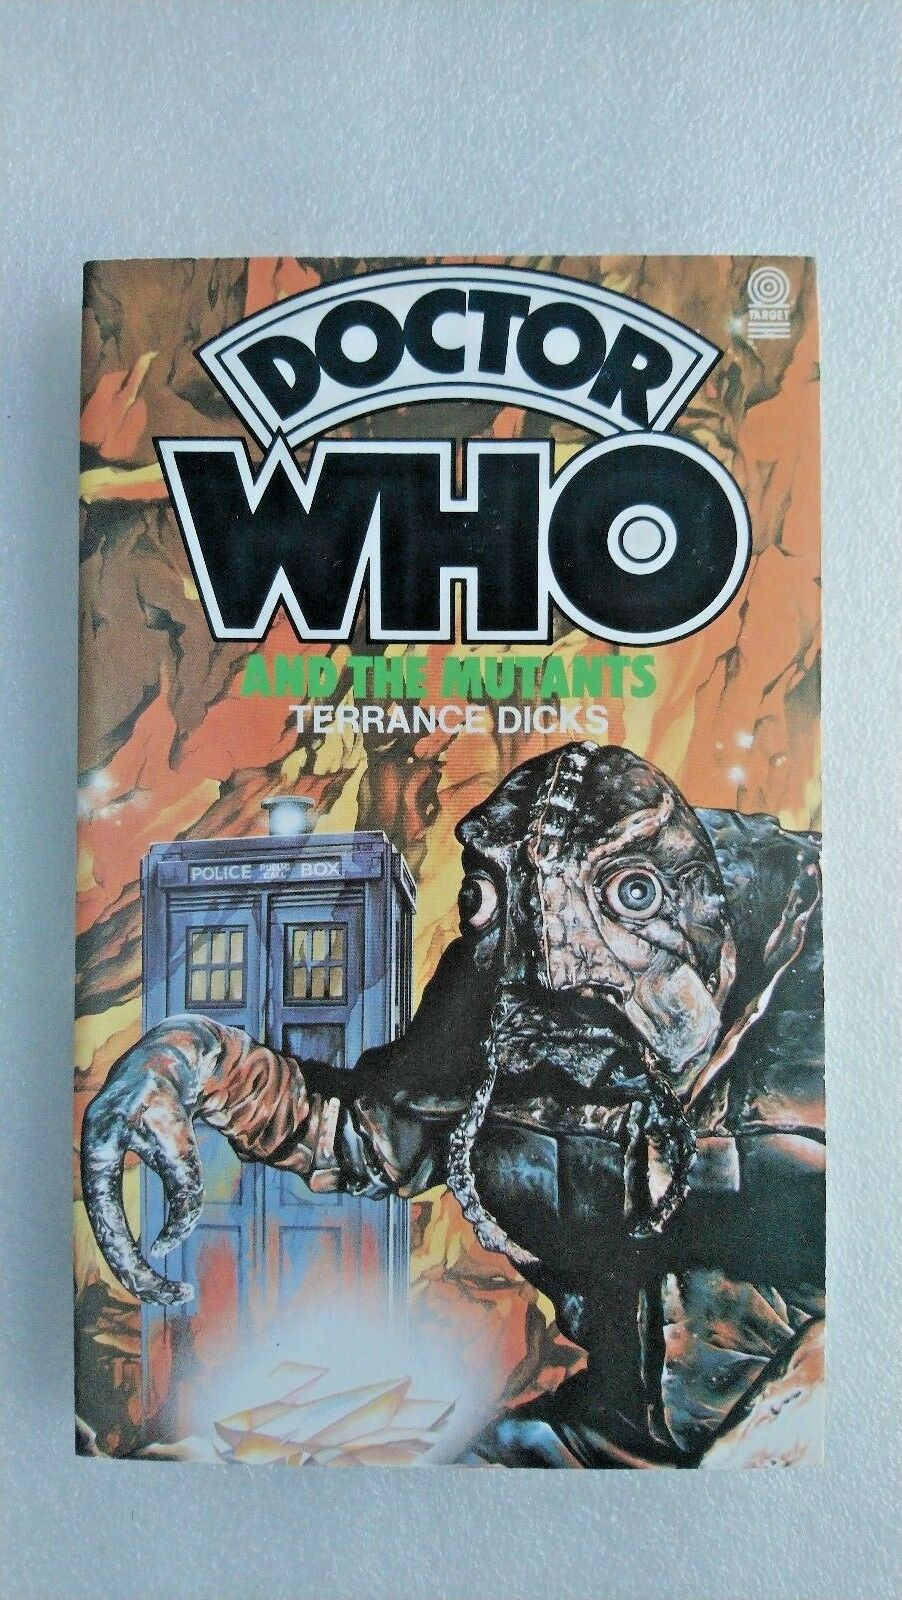 Doctor Who and the Mutants by Terrance Dicks (Paperback, 1984)